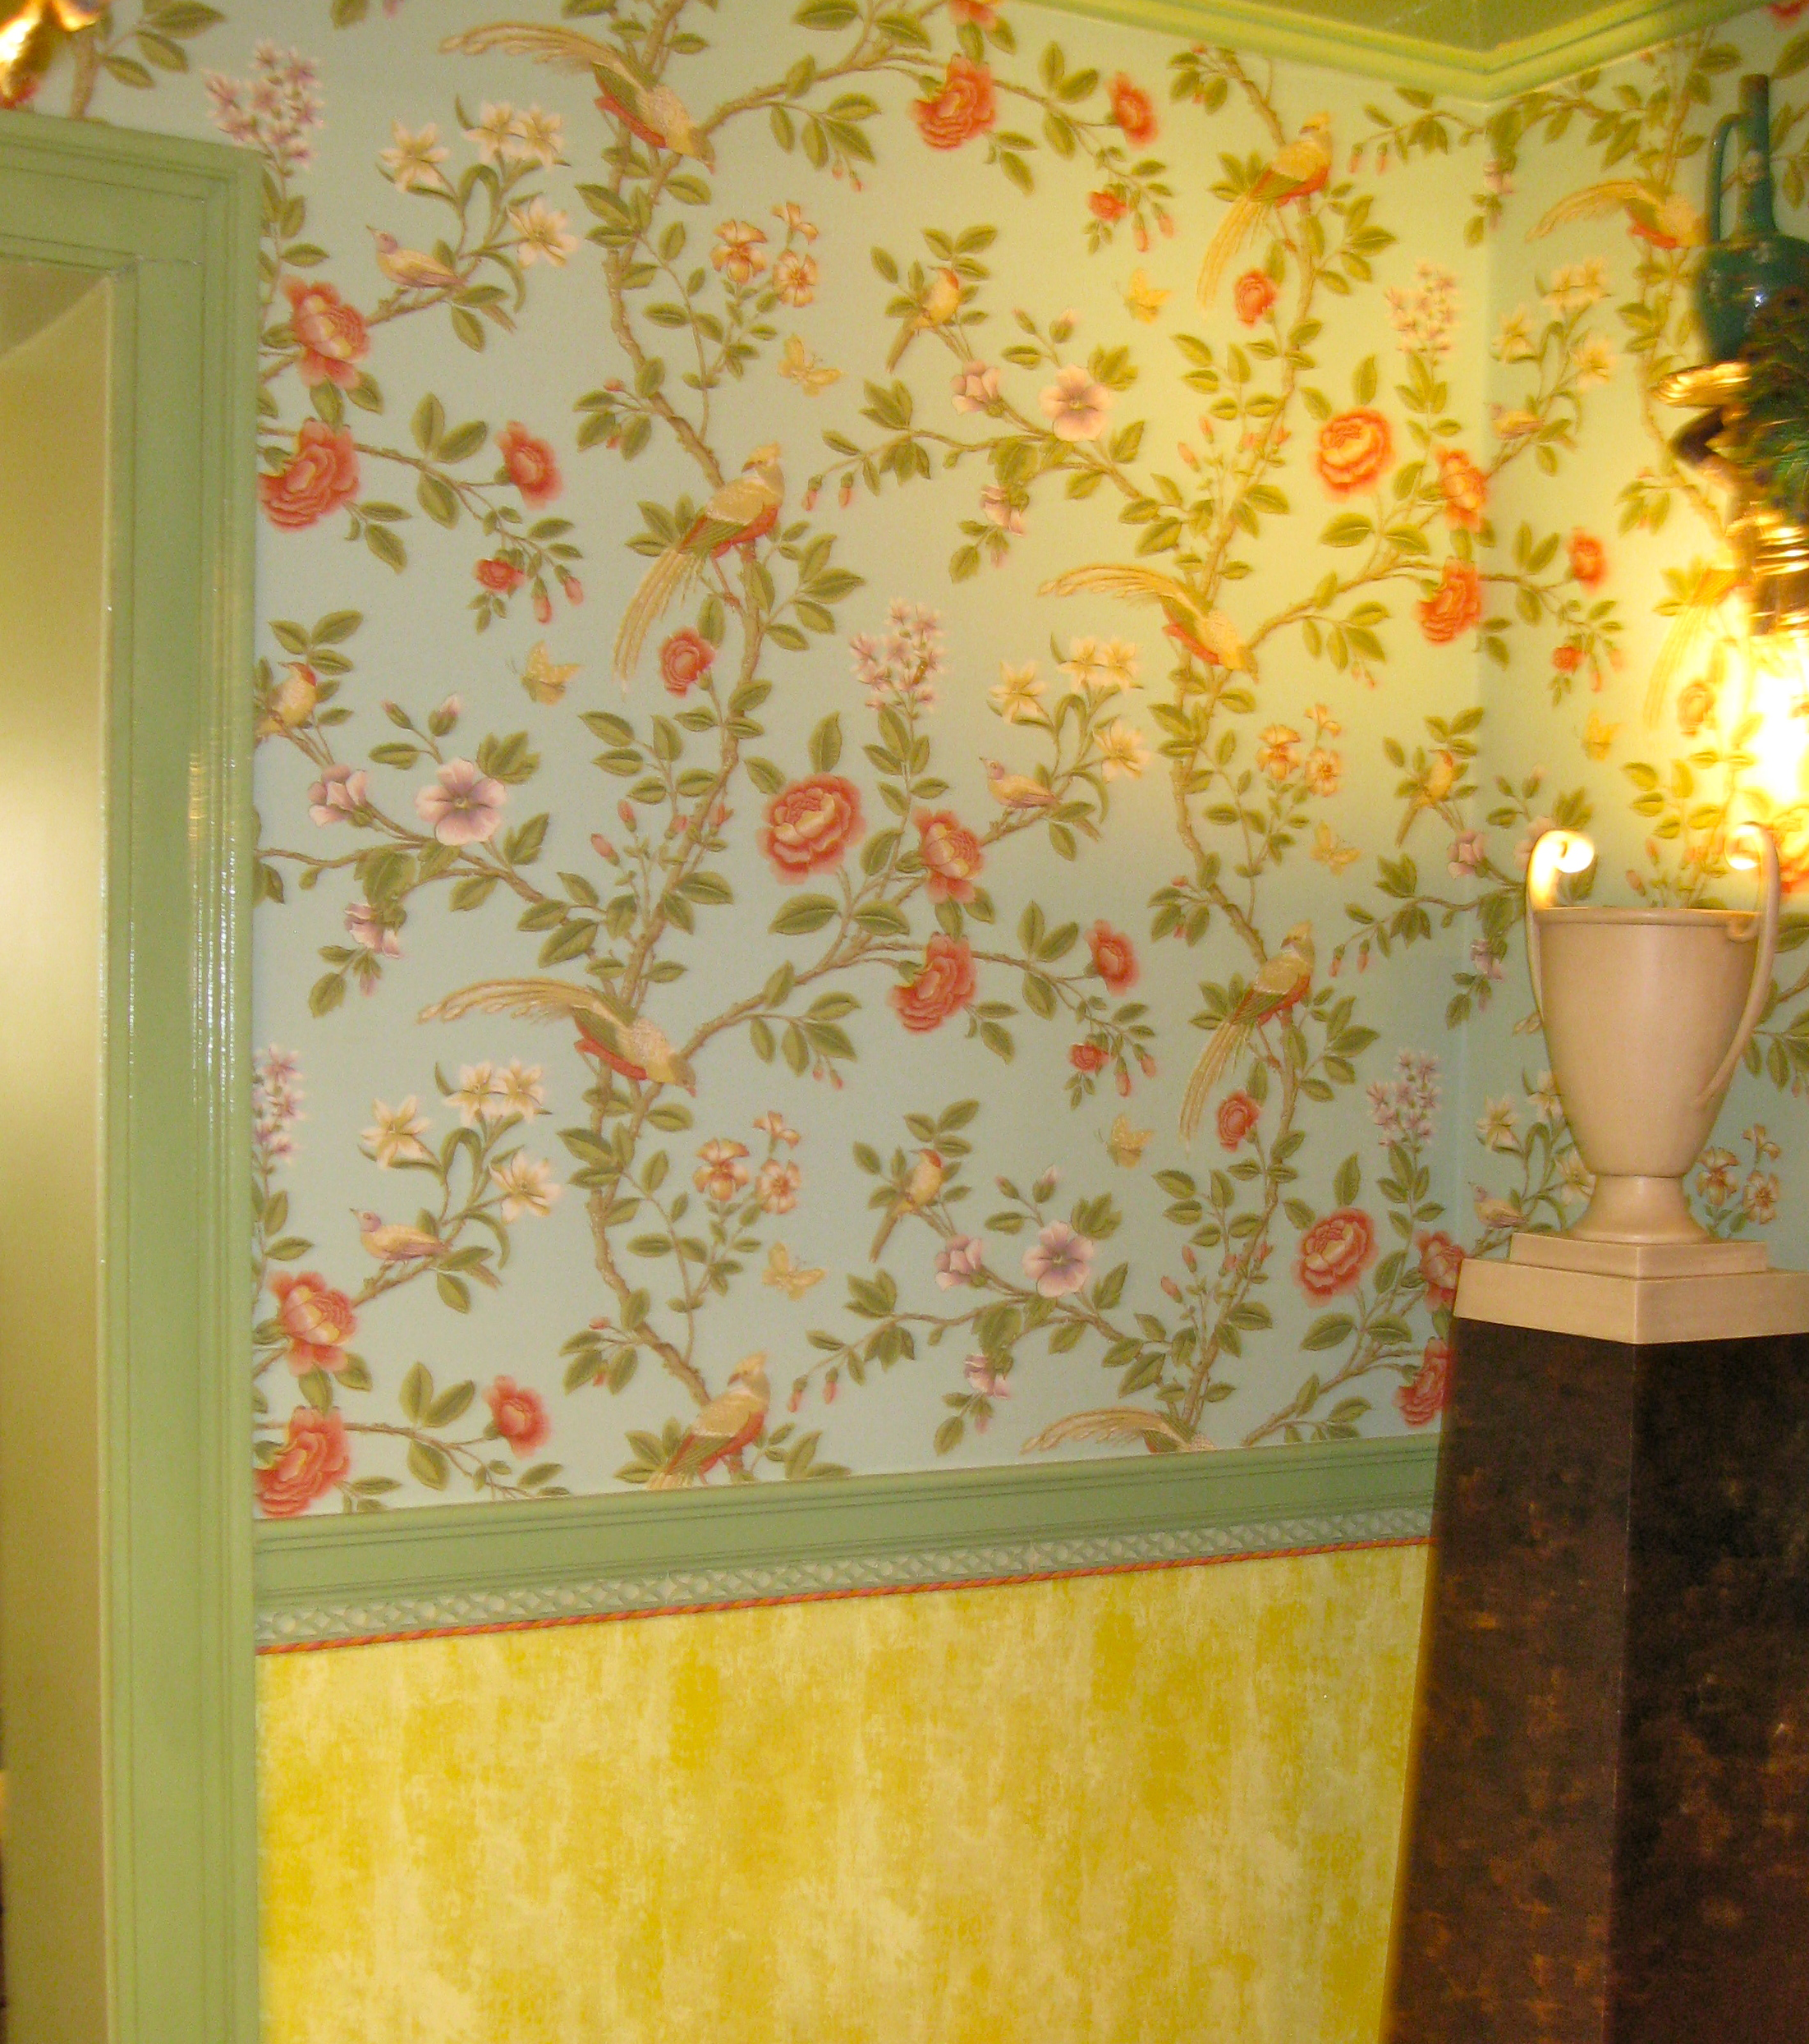 Beachlers Wallpaper Sales offers Guaranteed Low Discount Prices 2203x2489